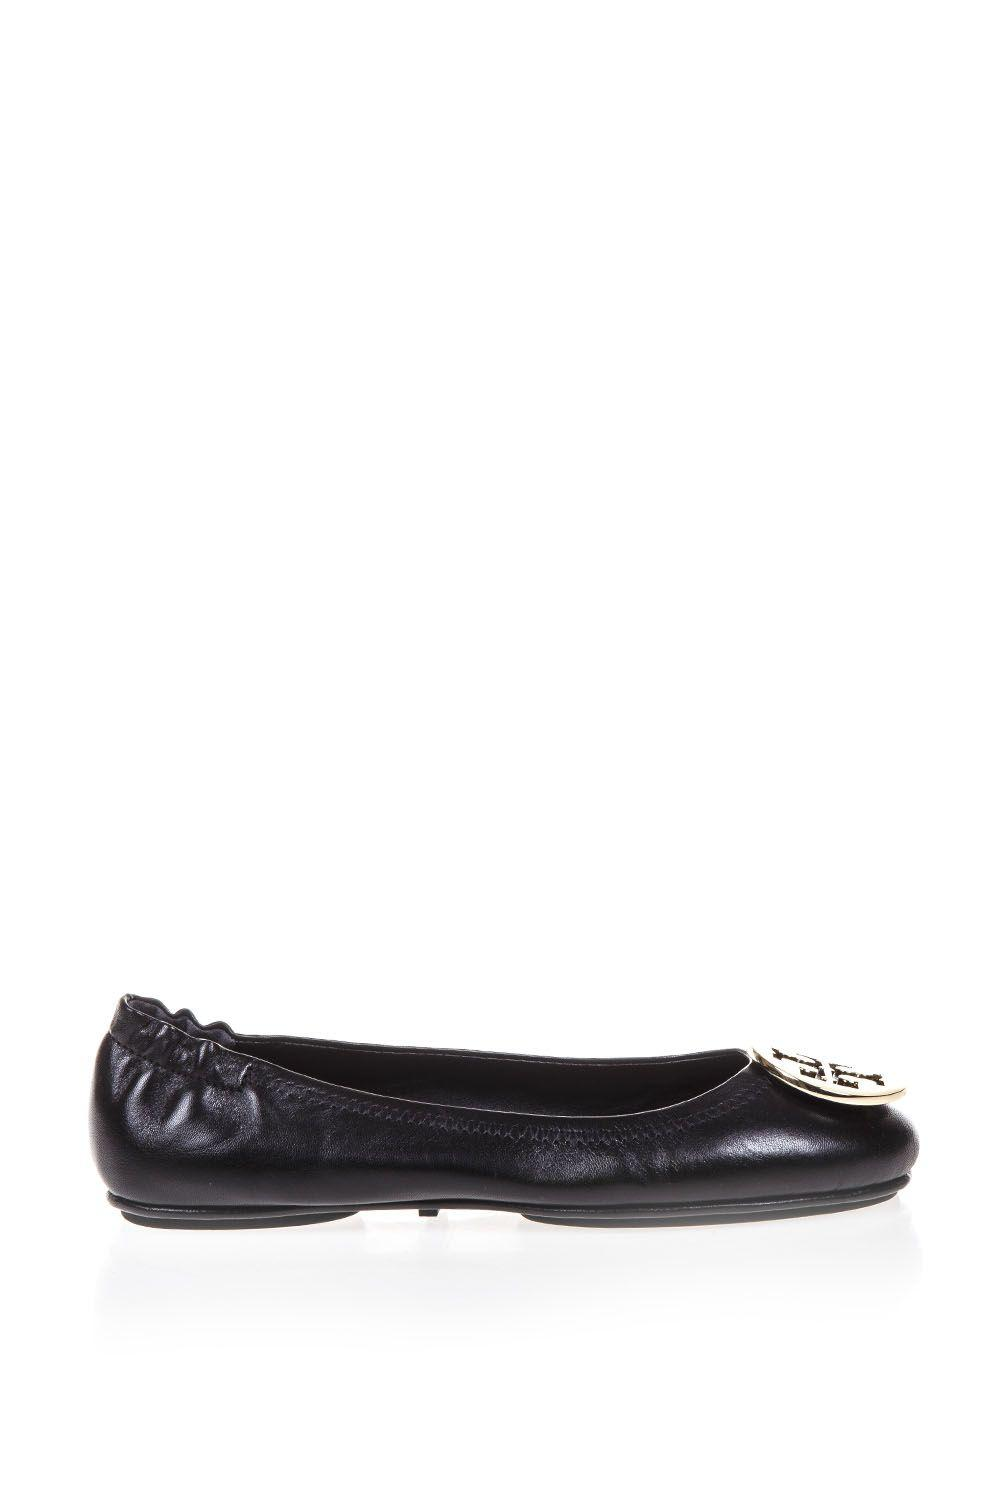 175570f52 Tory Burch Black Minnie Travel Ballet Flat In Leather In Blk Other ...